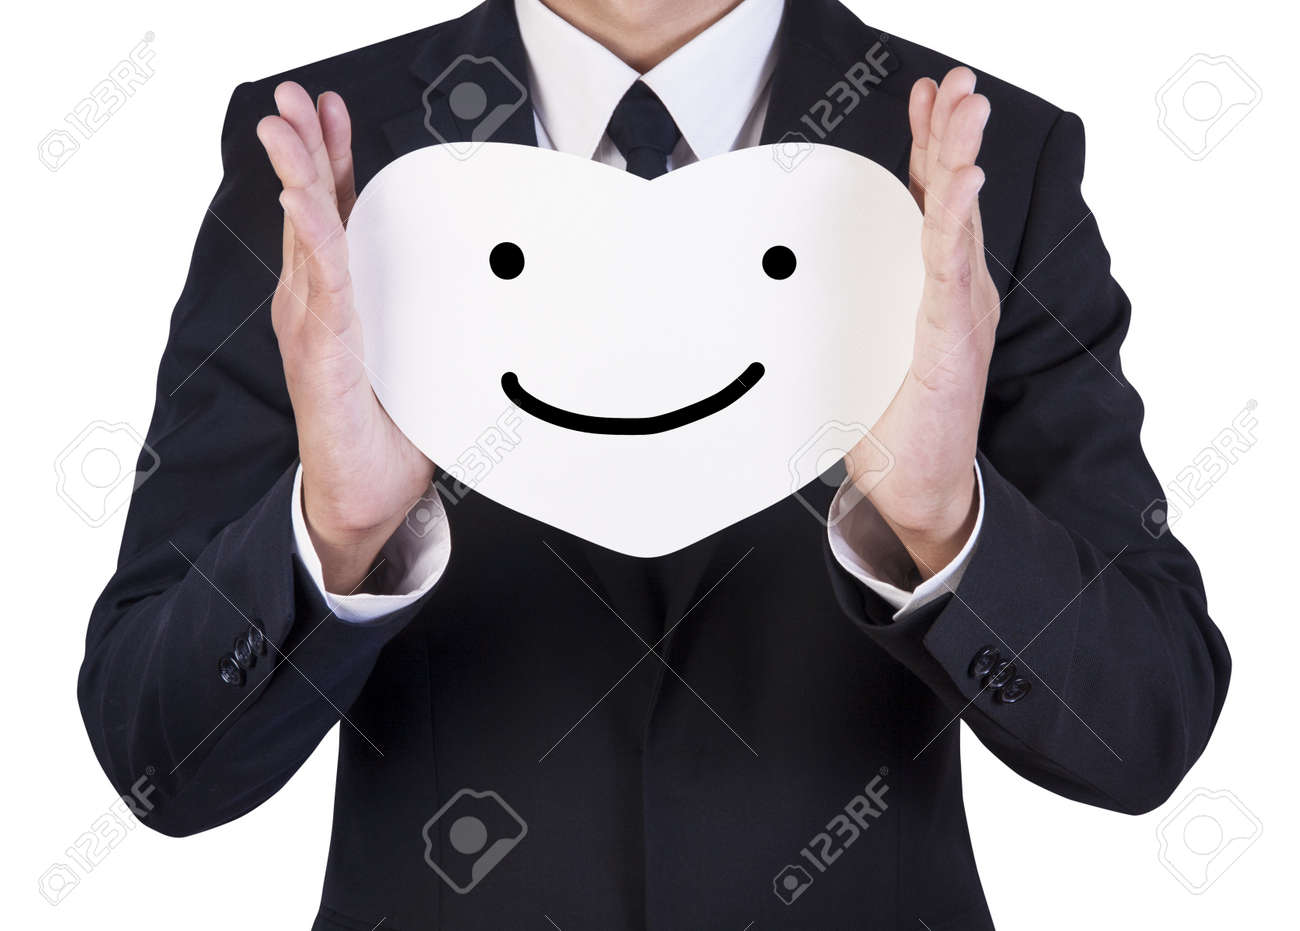 Businessman holding paper written smile emotion in his hand Stock Photo - 14660525